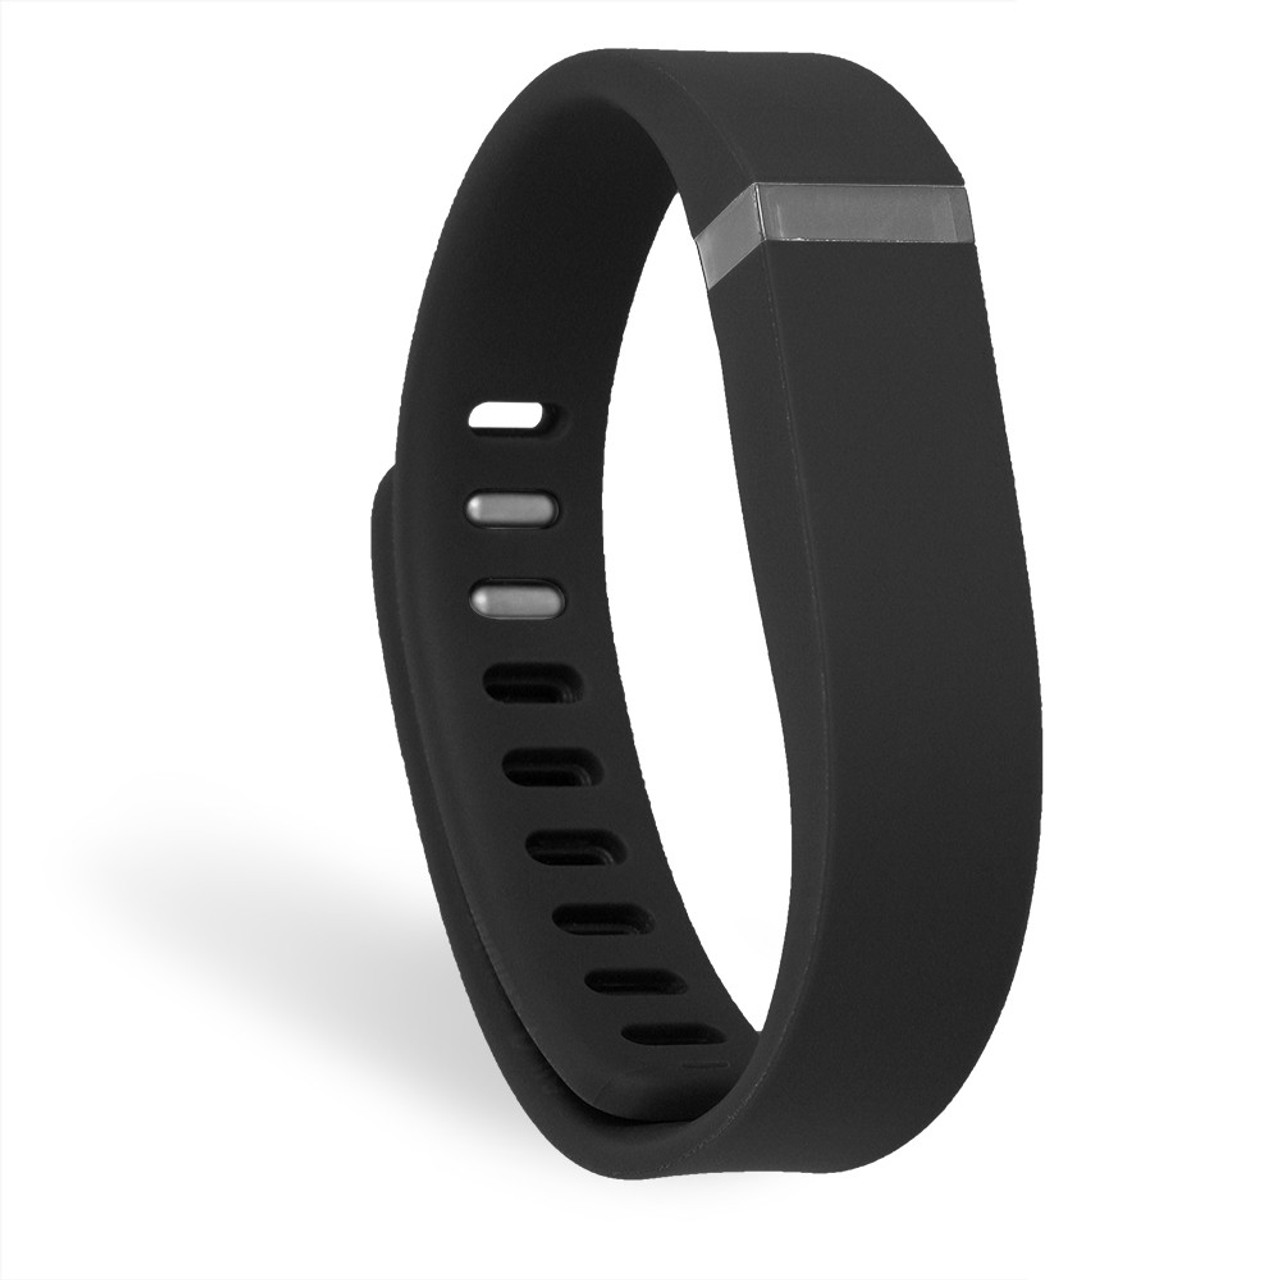 Fitbit Flex Wireless Activity and Sleep Tracker Wristband (Black)